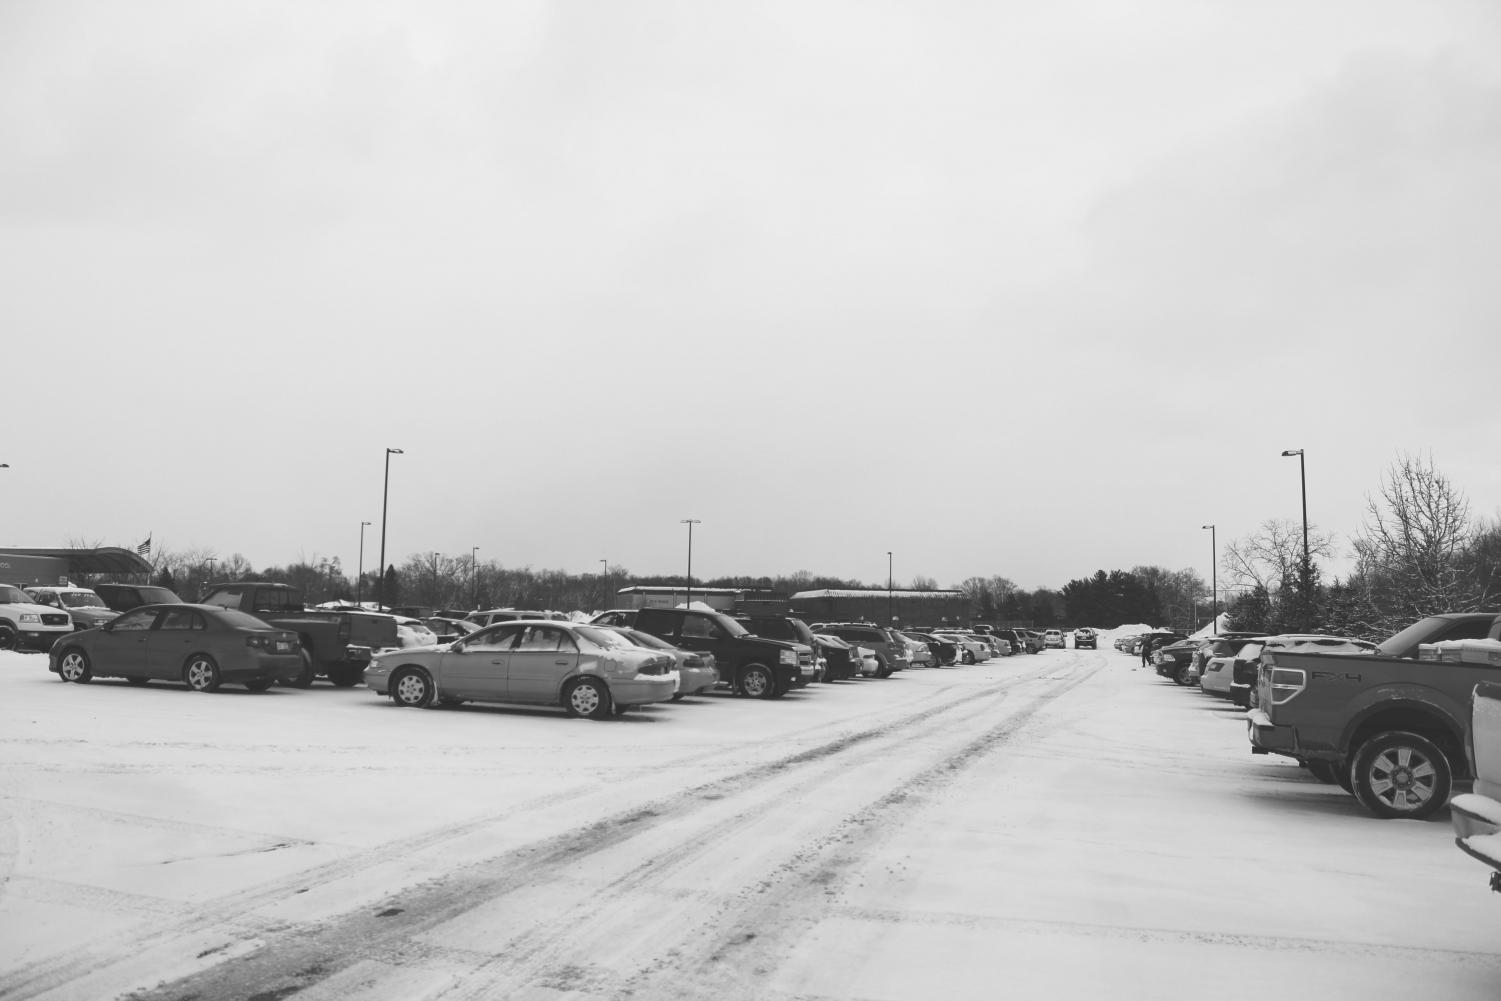 The great Senior parking lot.